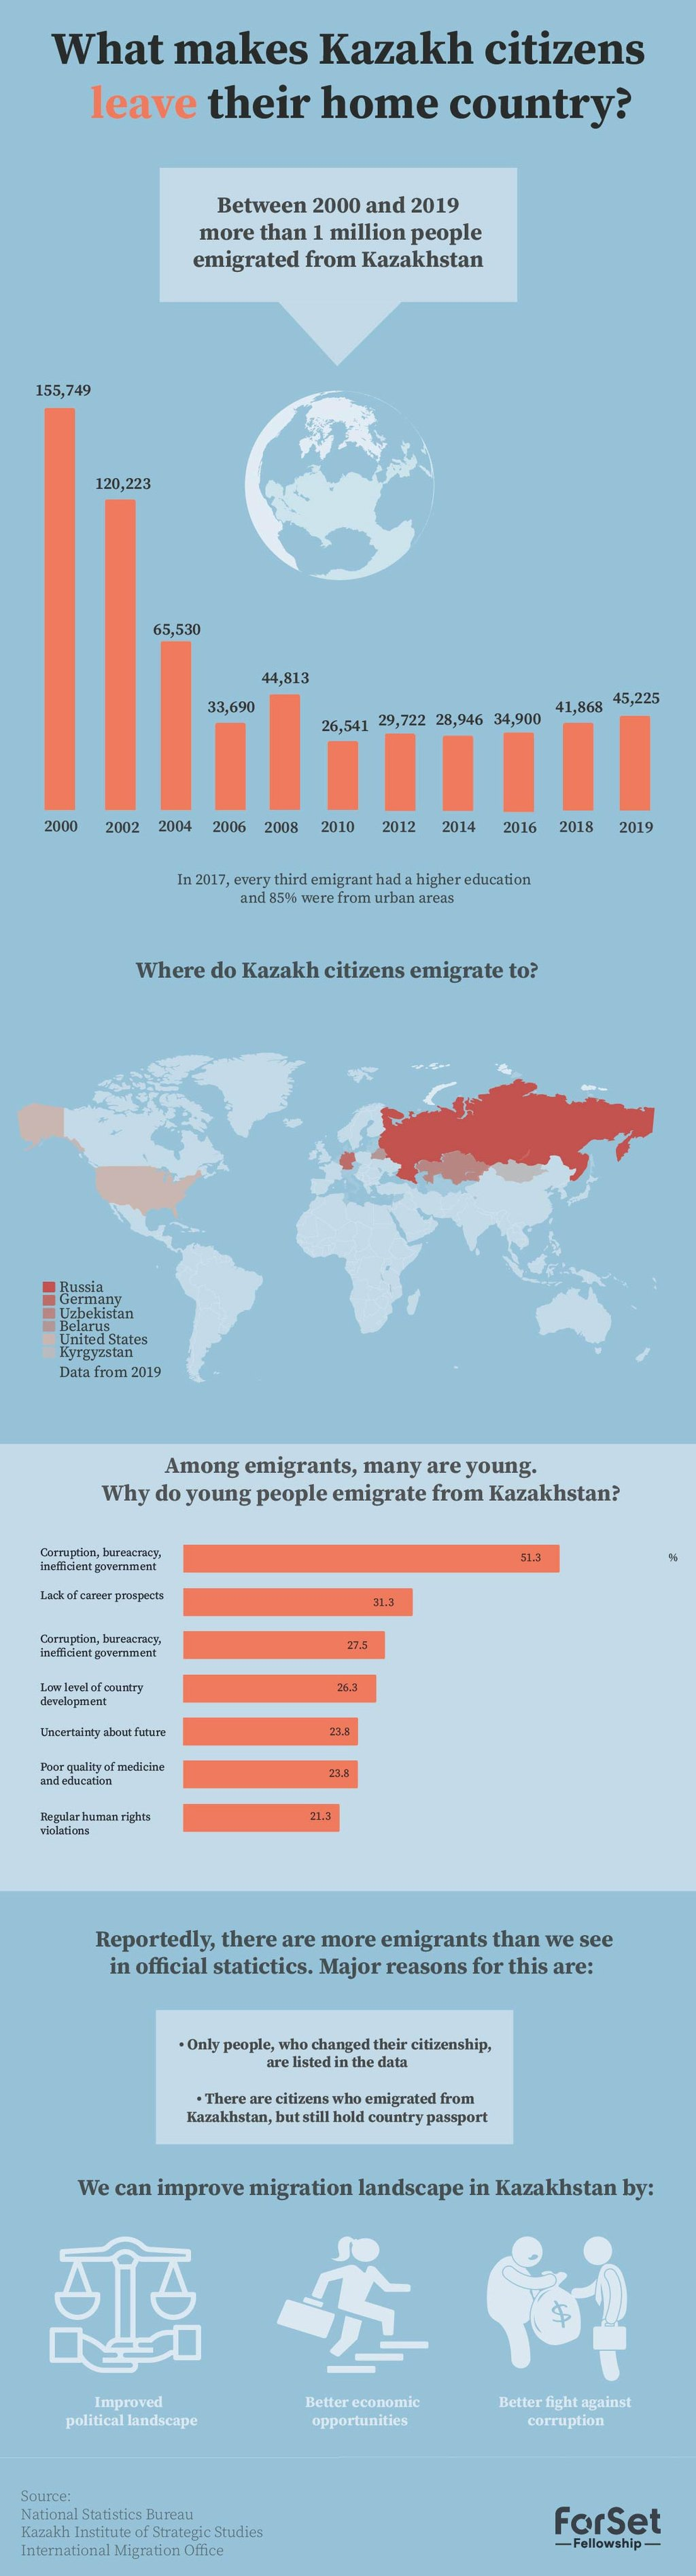 Between 2000 and 2019 more than one million people emigrated from Kazakhstan. In this infographic, you can explore why this may be happening, what age groups it affects the most, and what can be done to change the situation.